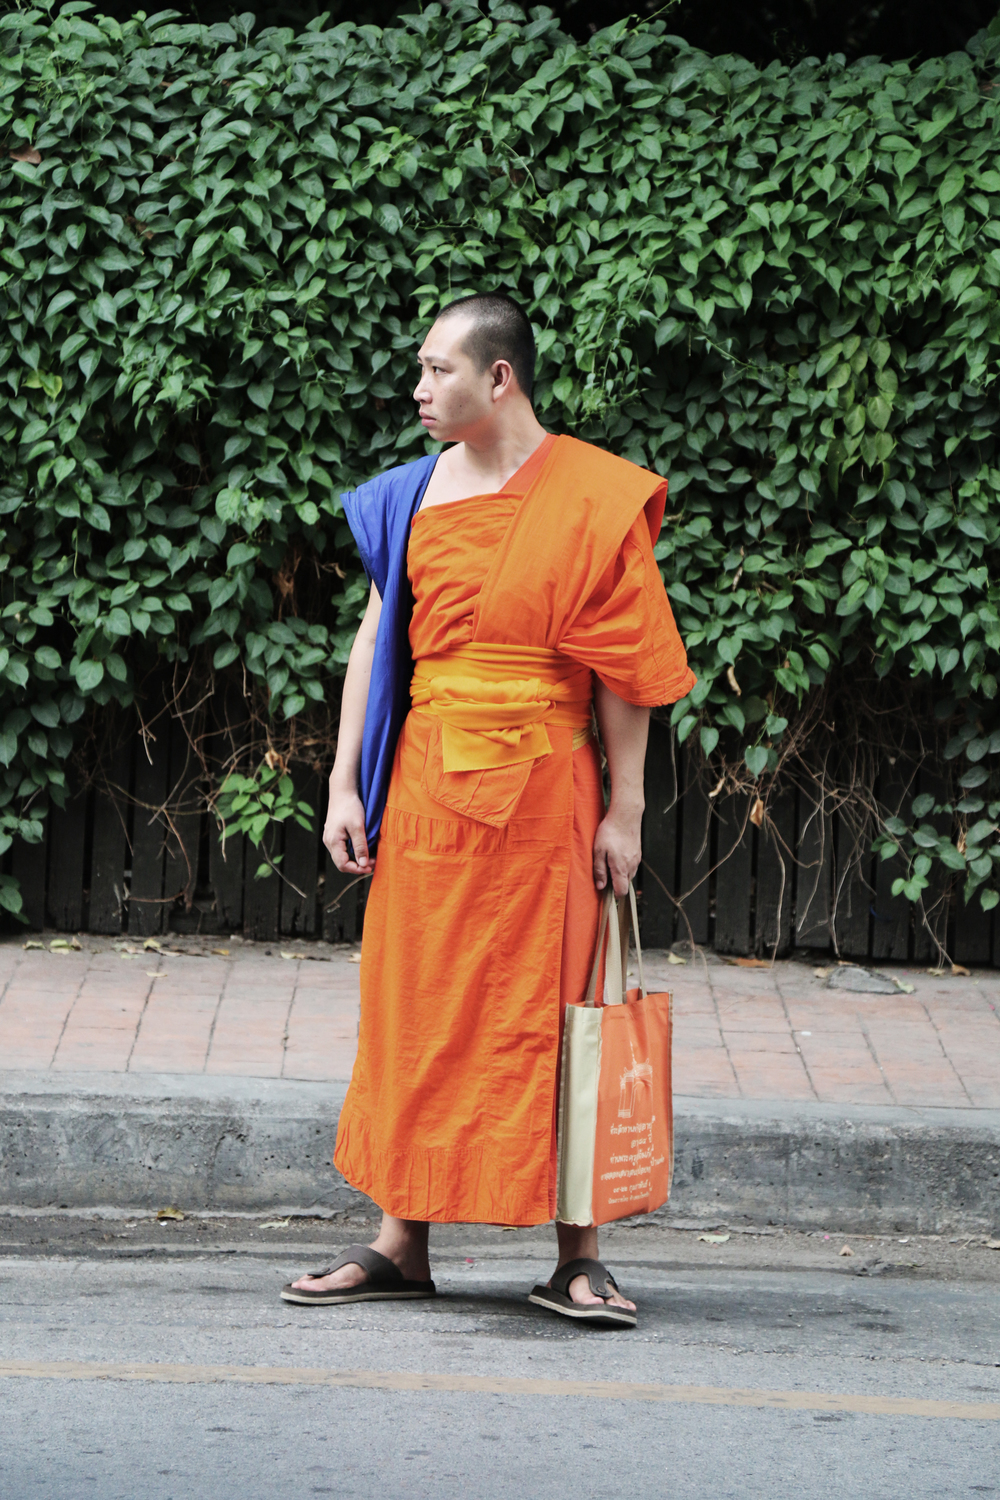 Buddhist Monk. Image courtesy John O'Callaghan.